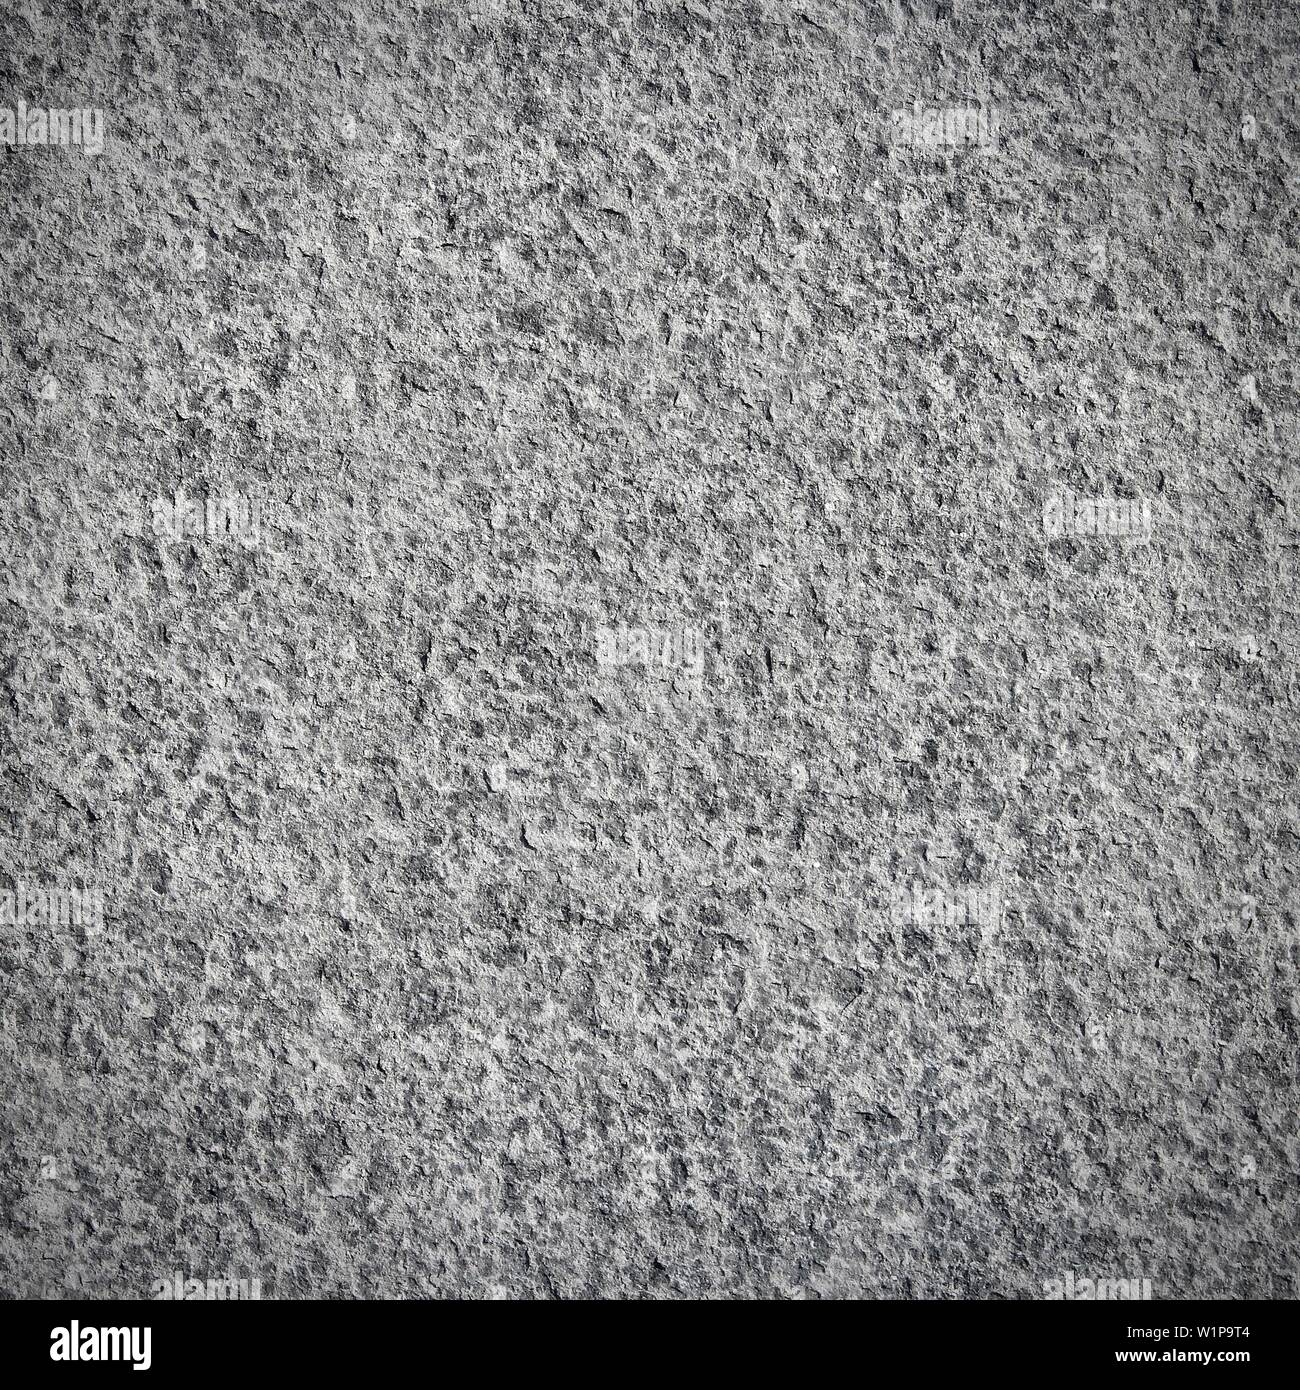 Granite background - textured stone solid surface  Abstract